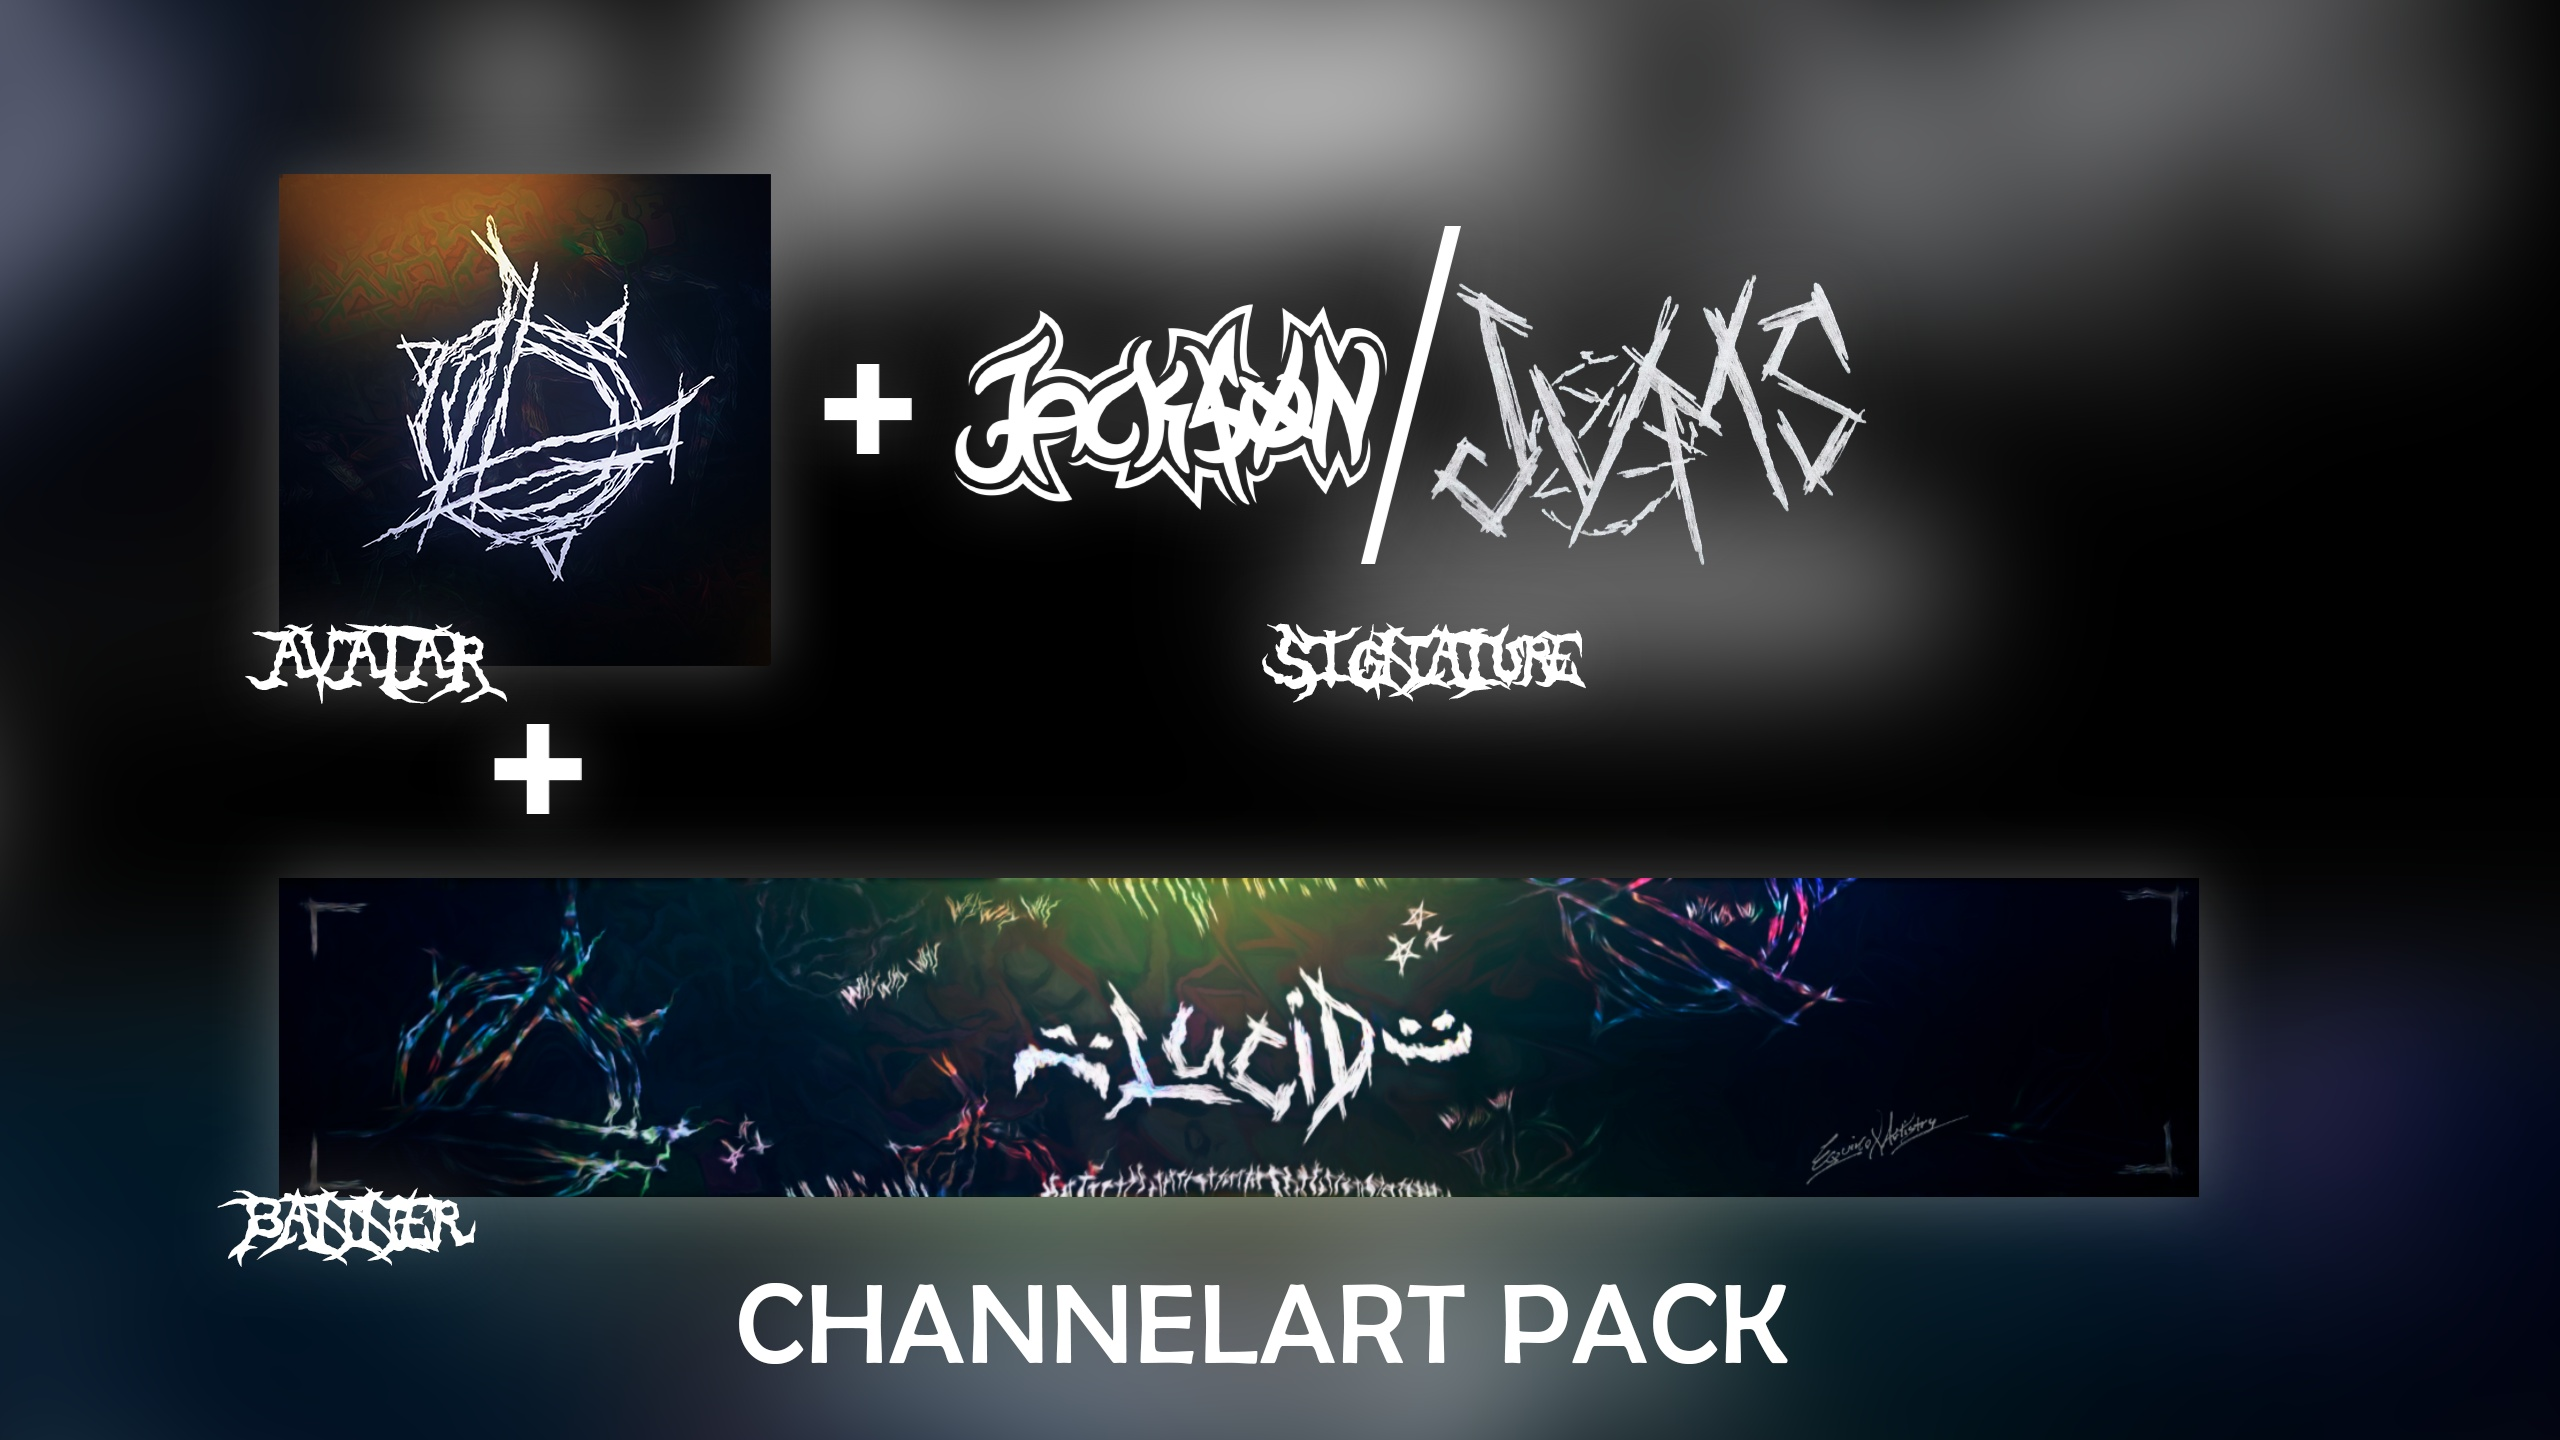 CHANNELART PACK | 𝕬𝖛𝖆𝖙𝖆𝖗 + 𝕭𝖆𝖓𝖓𝖊𝖗 & 𝕾𝖎𝖌𝖓𝖆𝖙𝖚𝖗𝖊